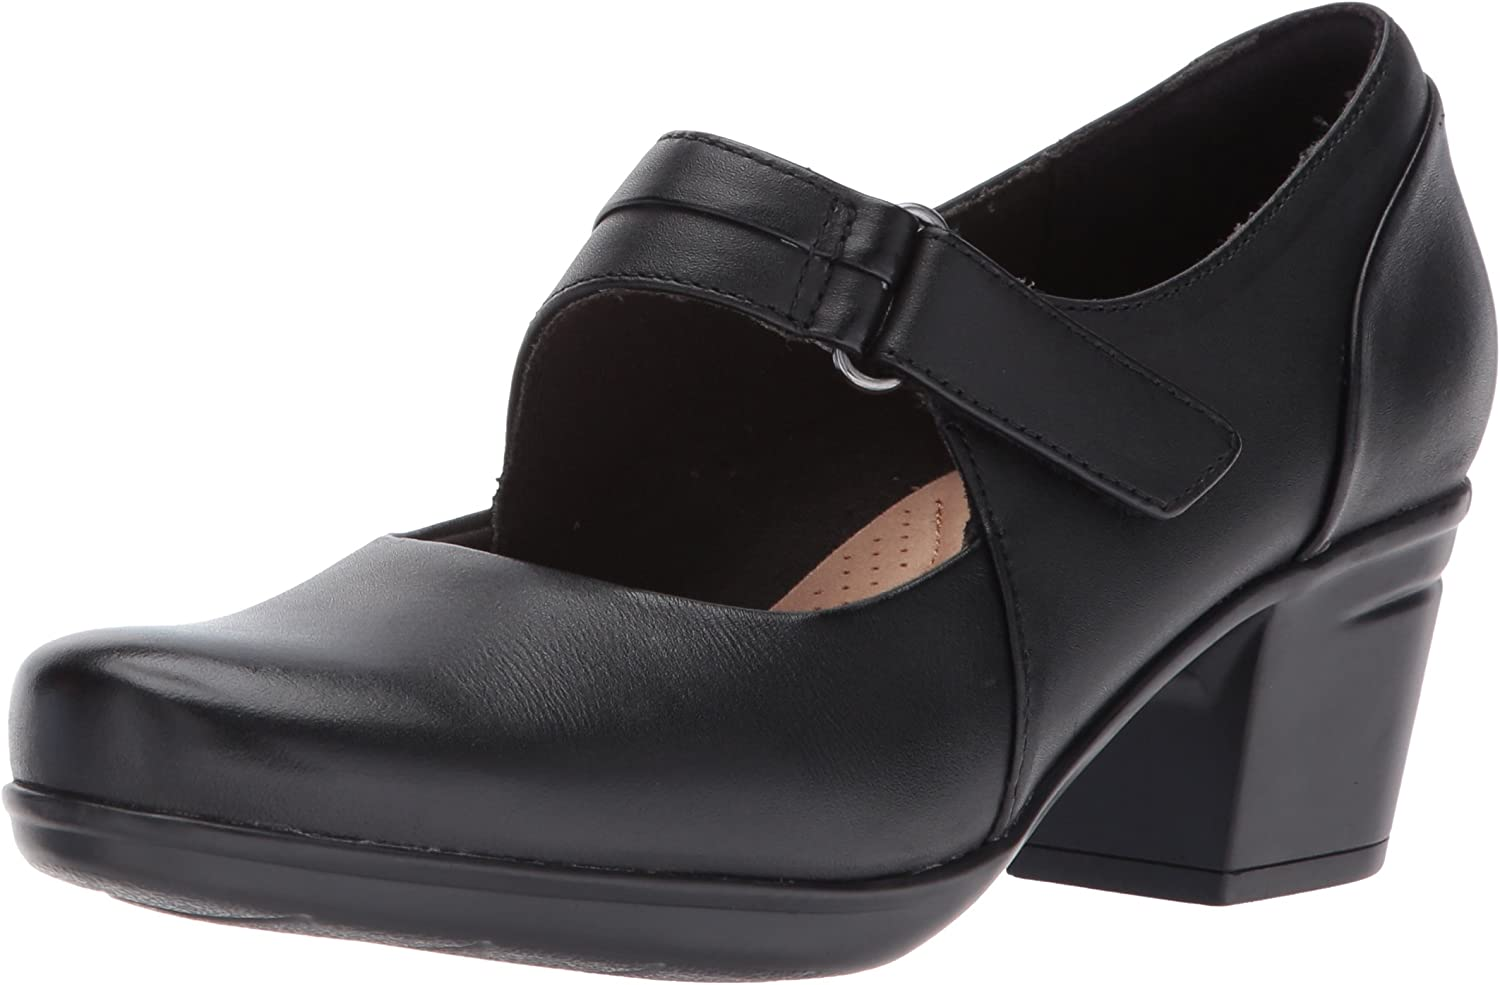 Clarks Womens Emslie Lulin Mary Jane